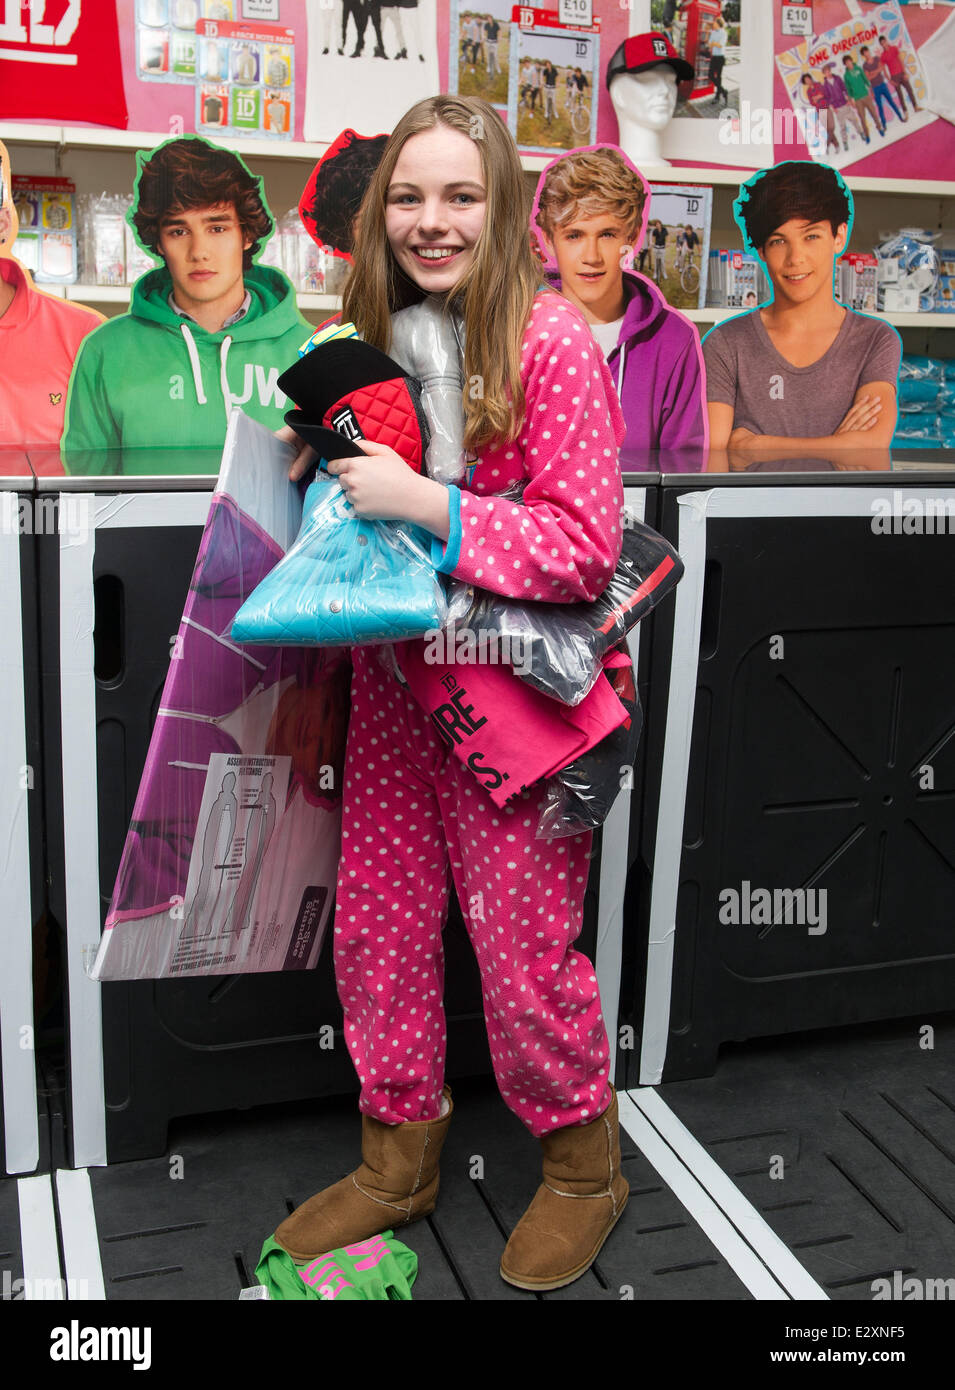 Fans of One Direction attending the opening of 1D World, a